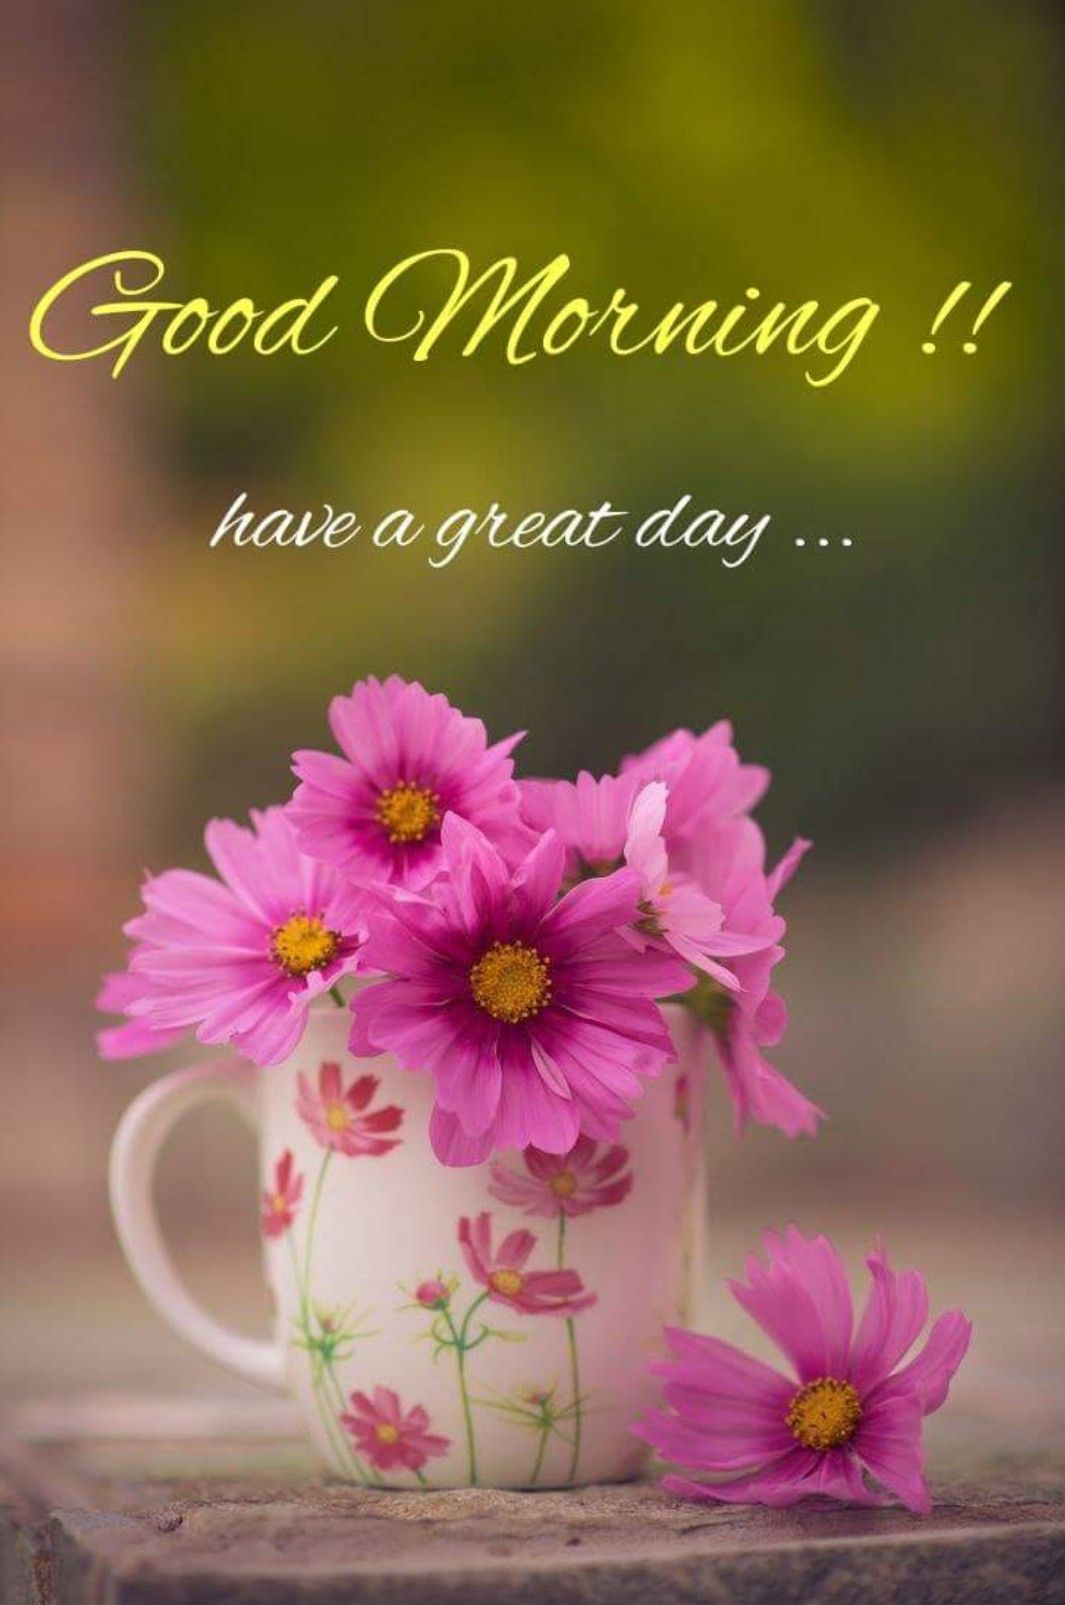 Good Morning One Day At A Time Pinterest Good Morning